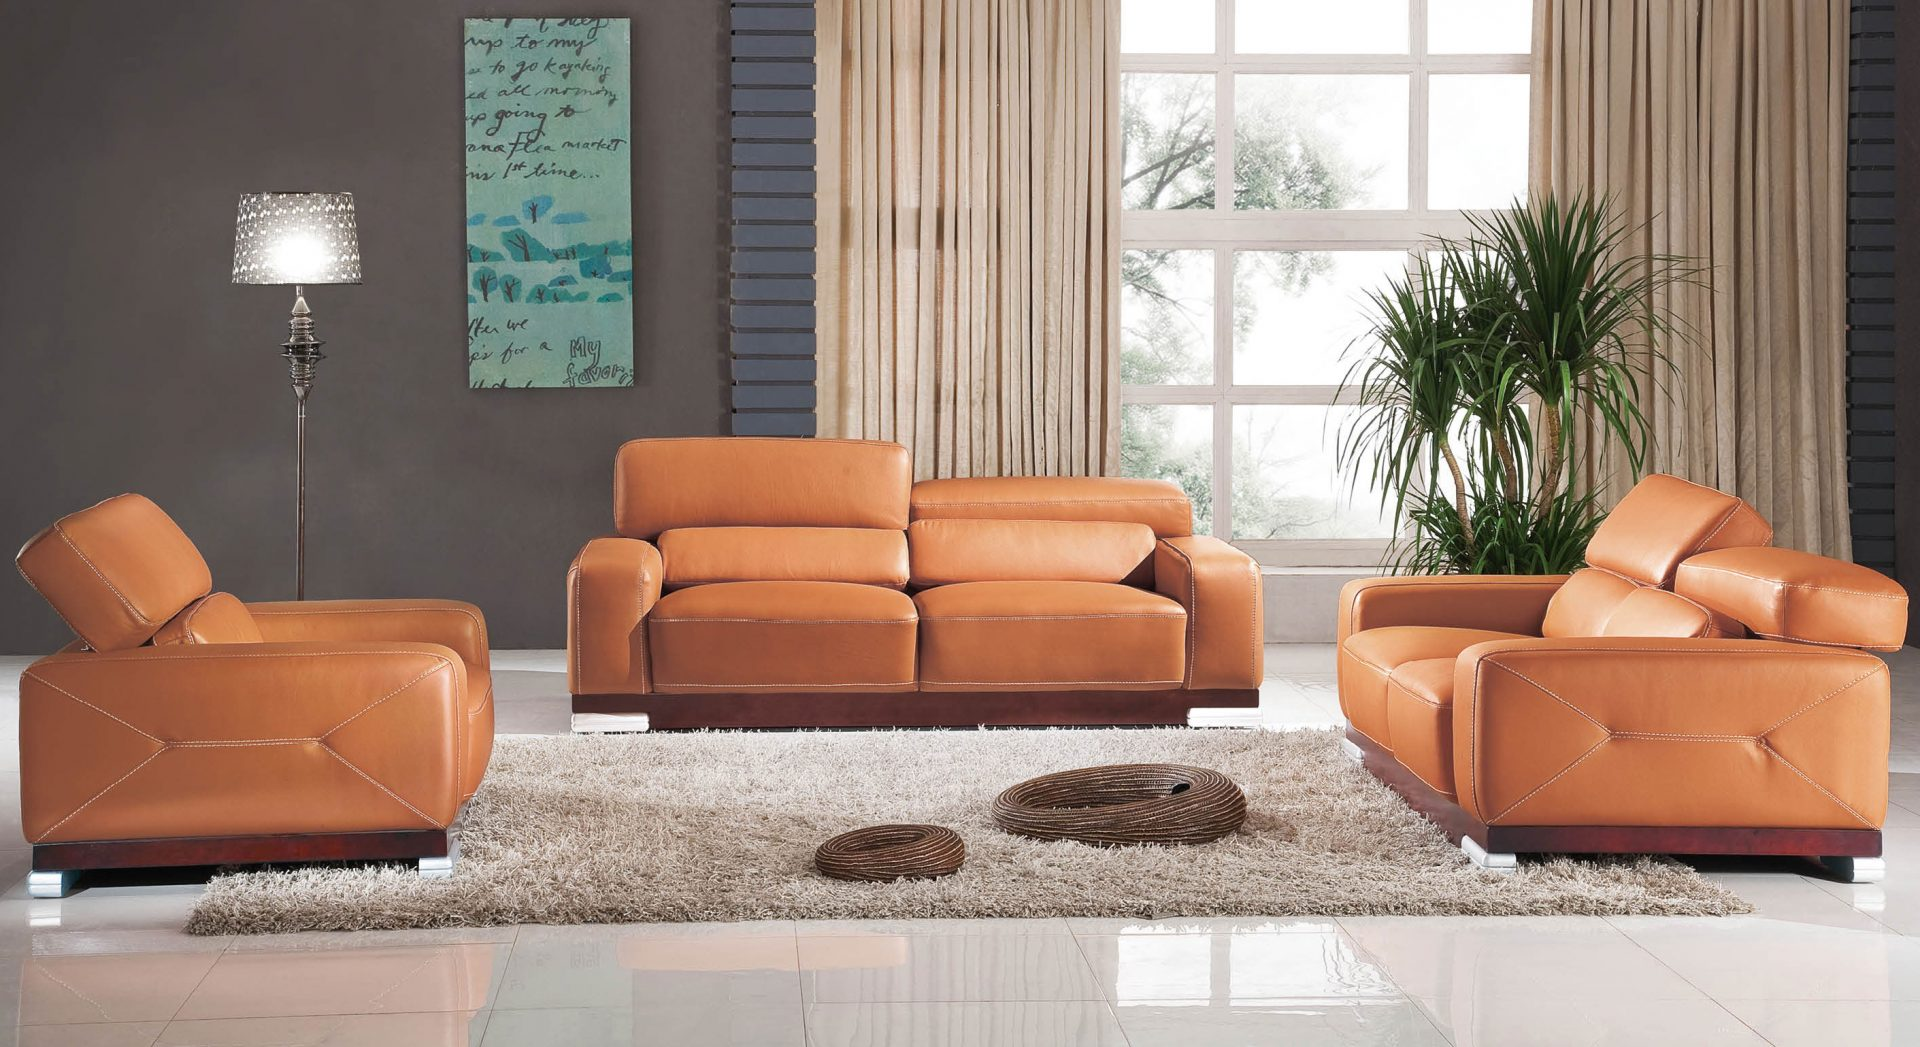 3 piece living room table set best pictures in india modern leather elegance decor